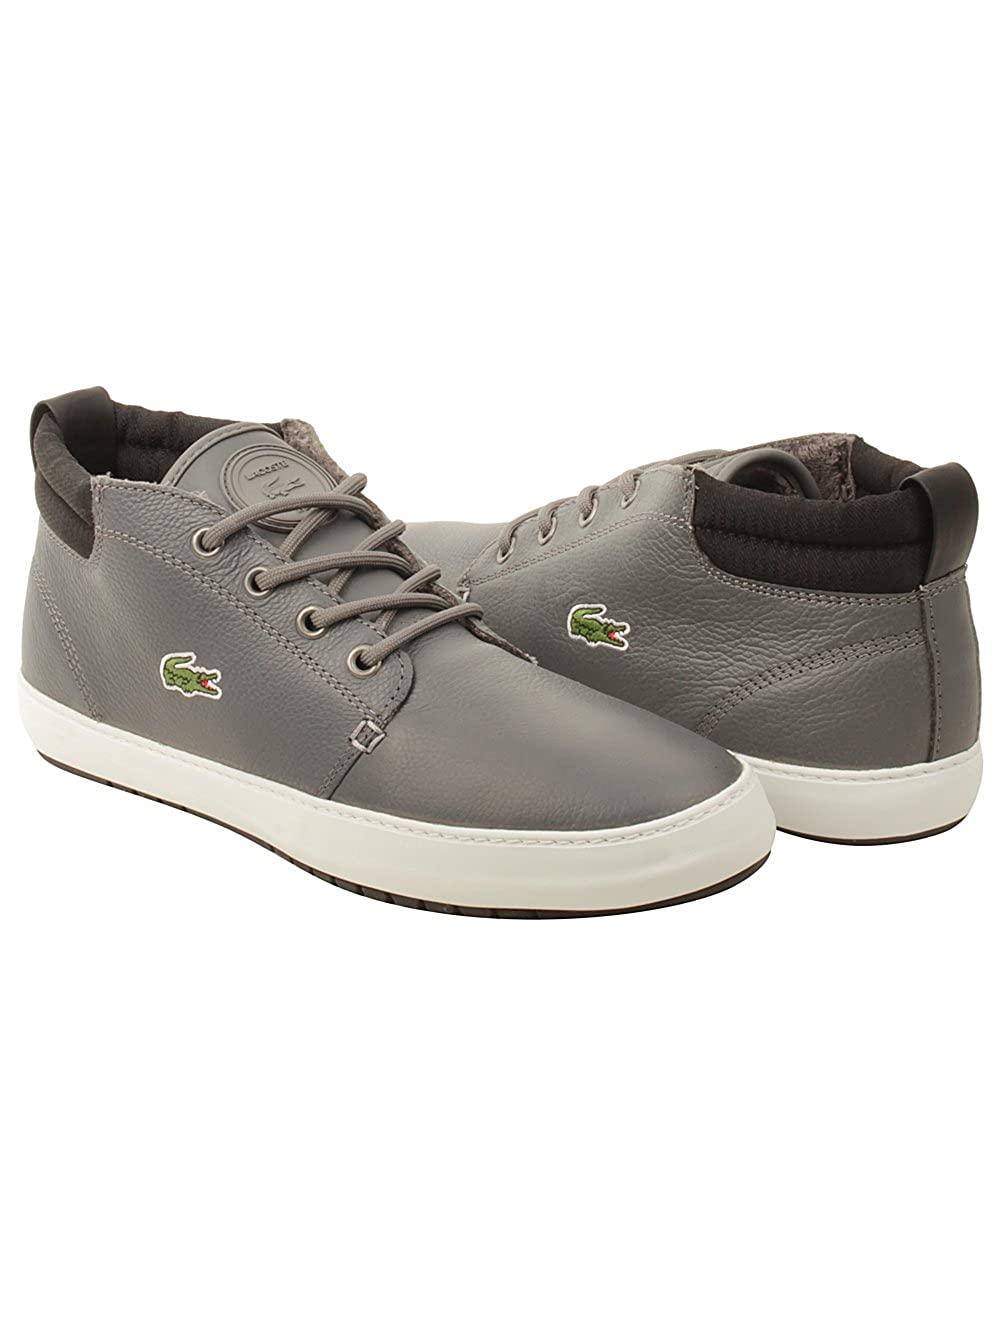 43ddac464 Lacoste Mens Ampthill Terra Twd2 Sneakers in Grey Black 8.5 (Adult)   Amazon.co.uk  Shoes   Bags